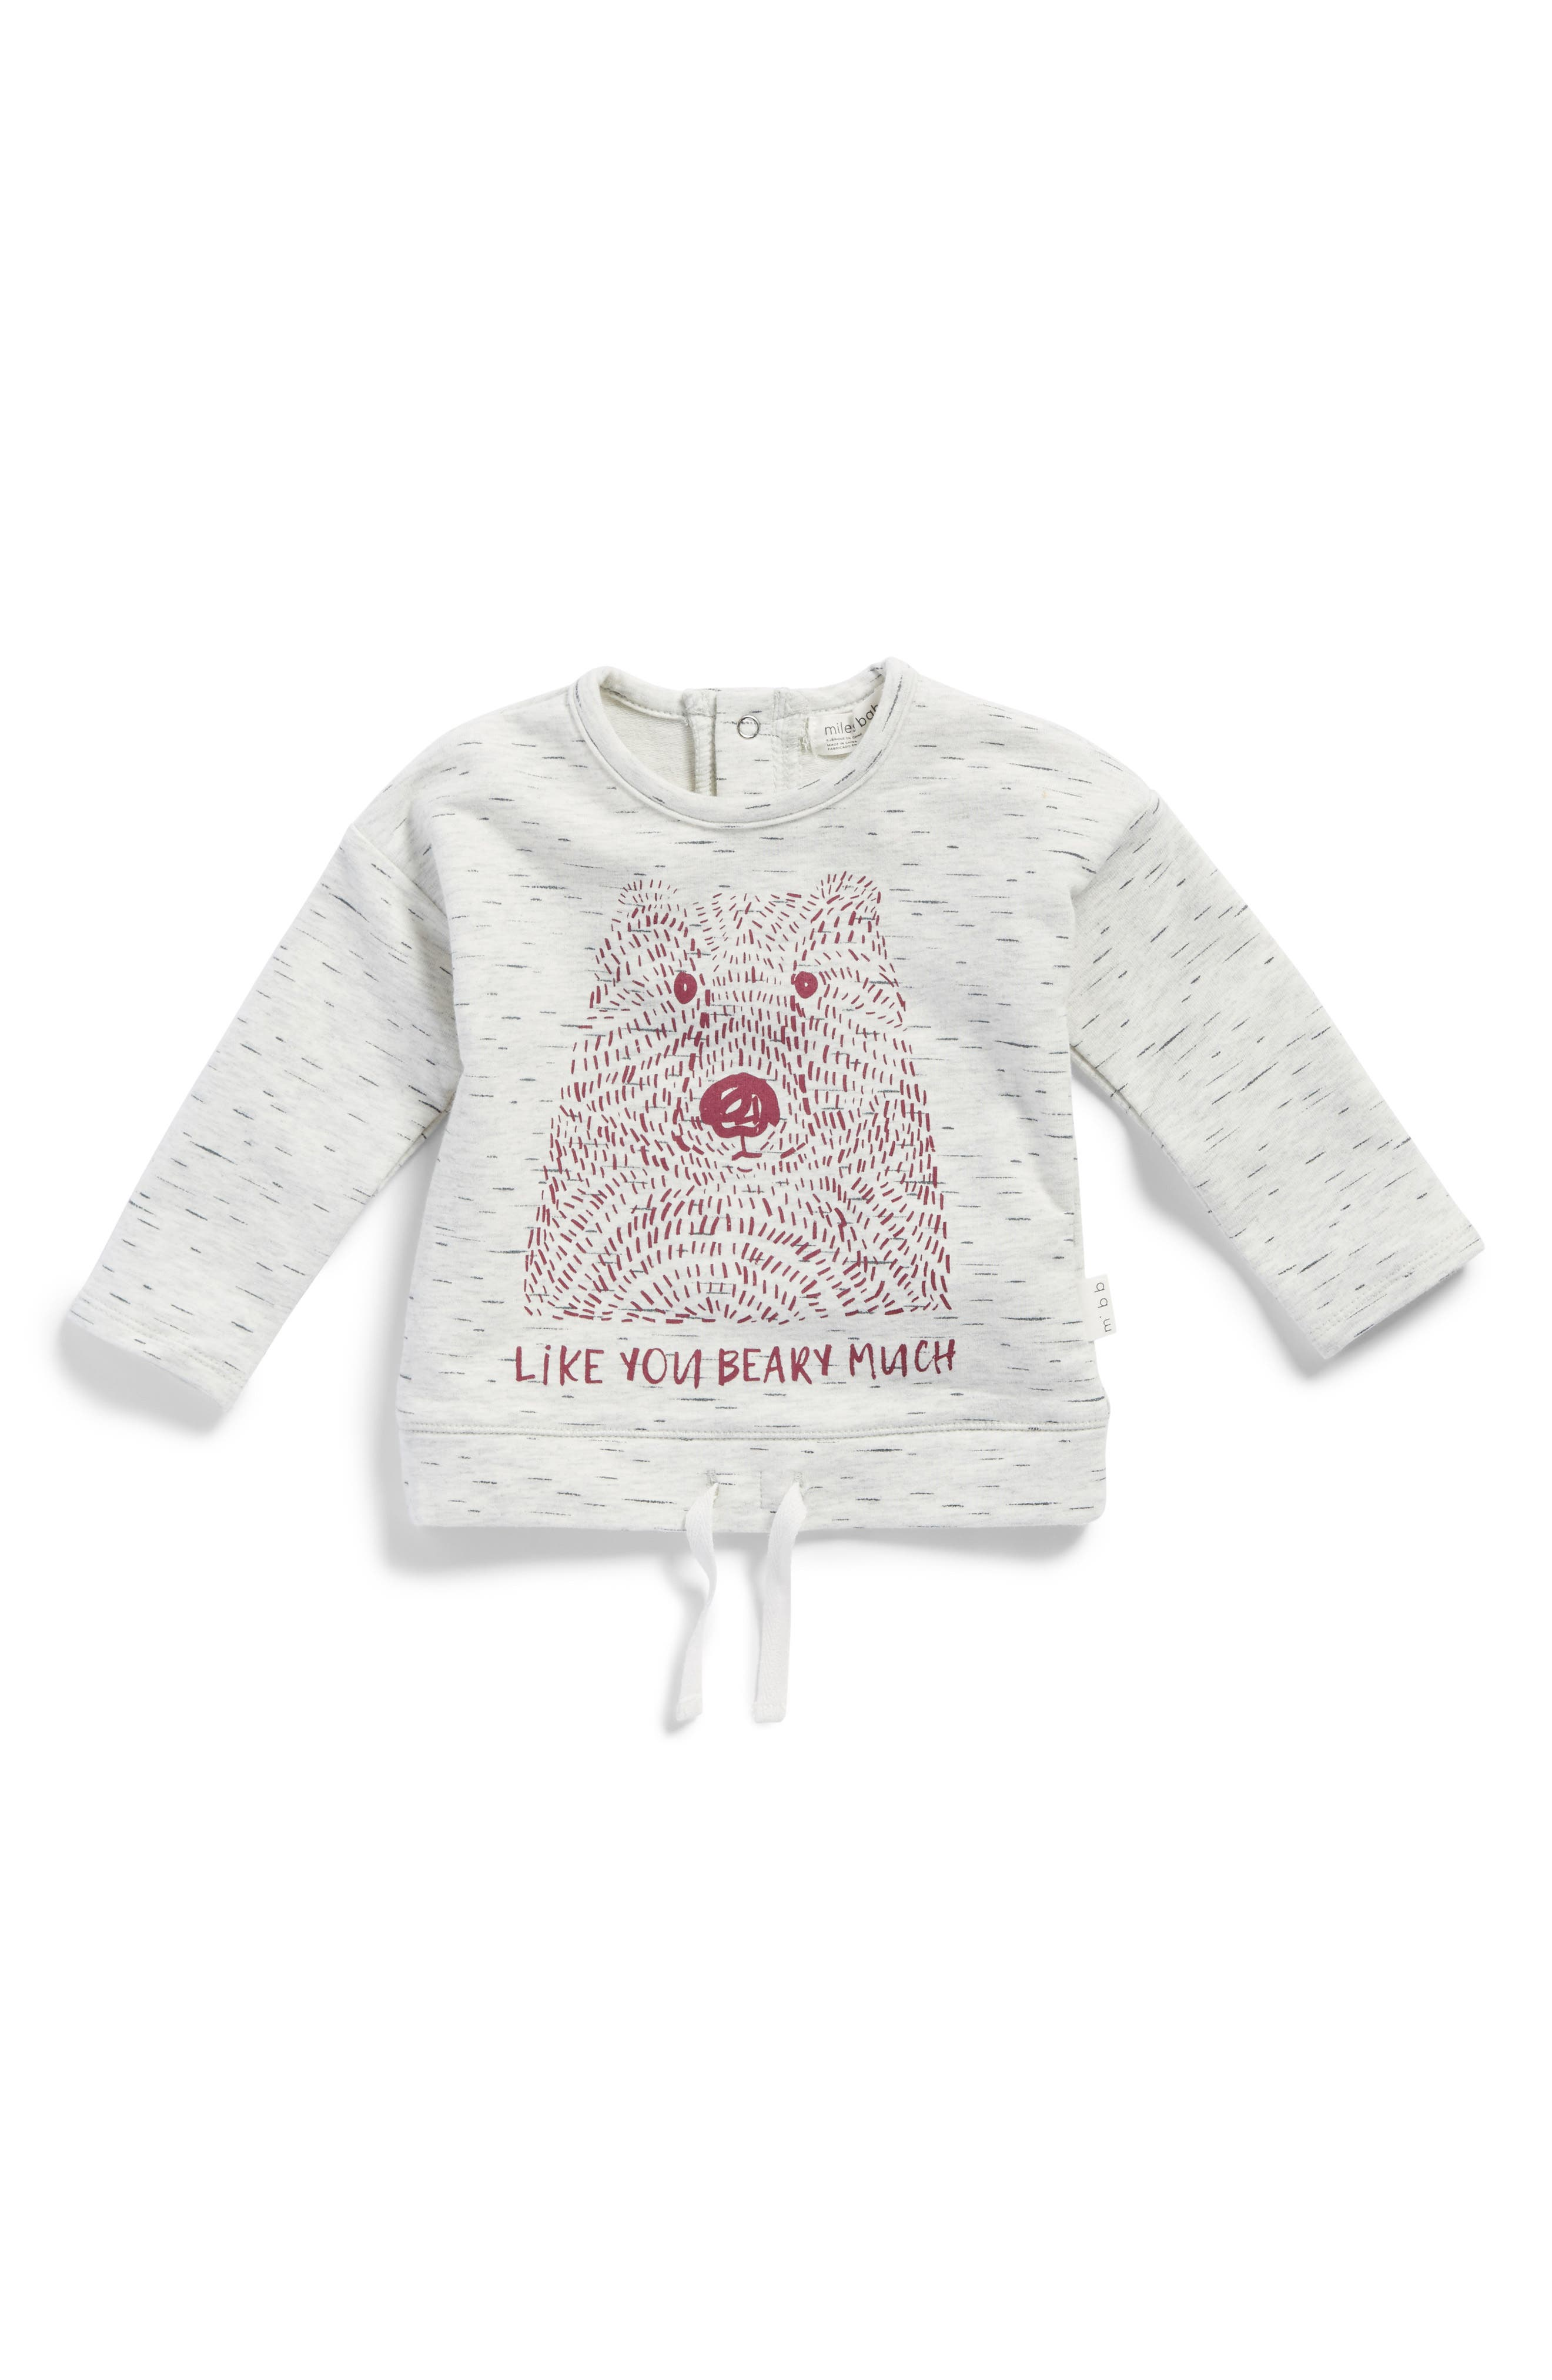 Like You Beary Much Graphic Tee,                         Main,                         color, 060